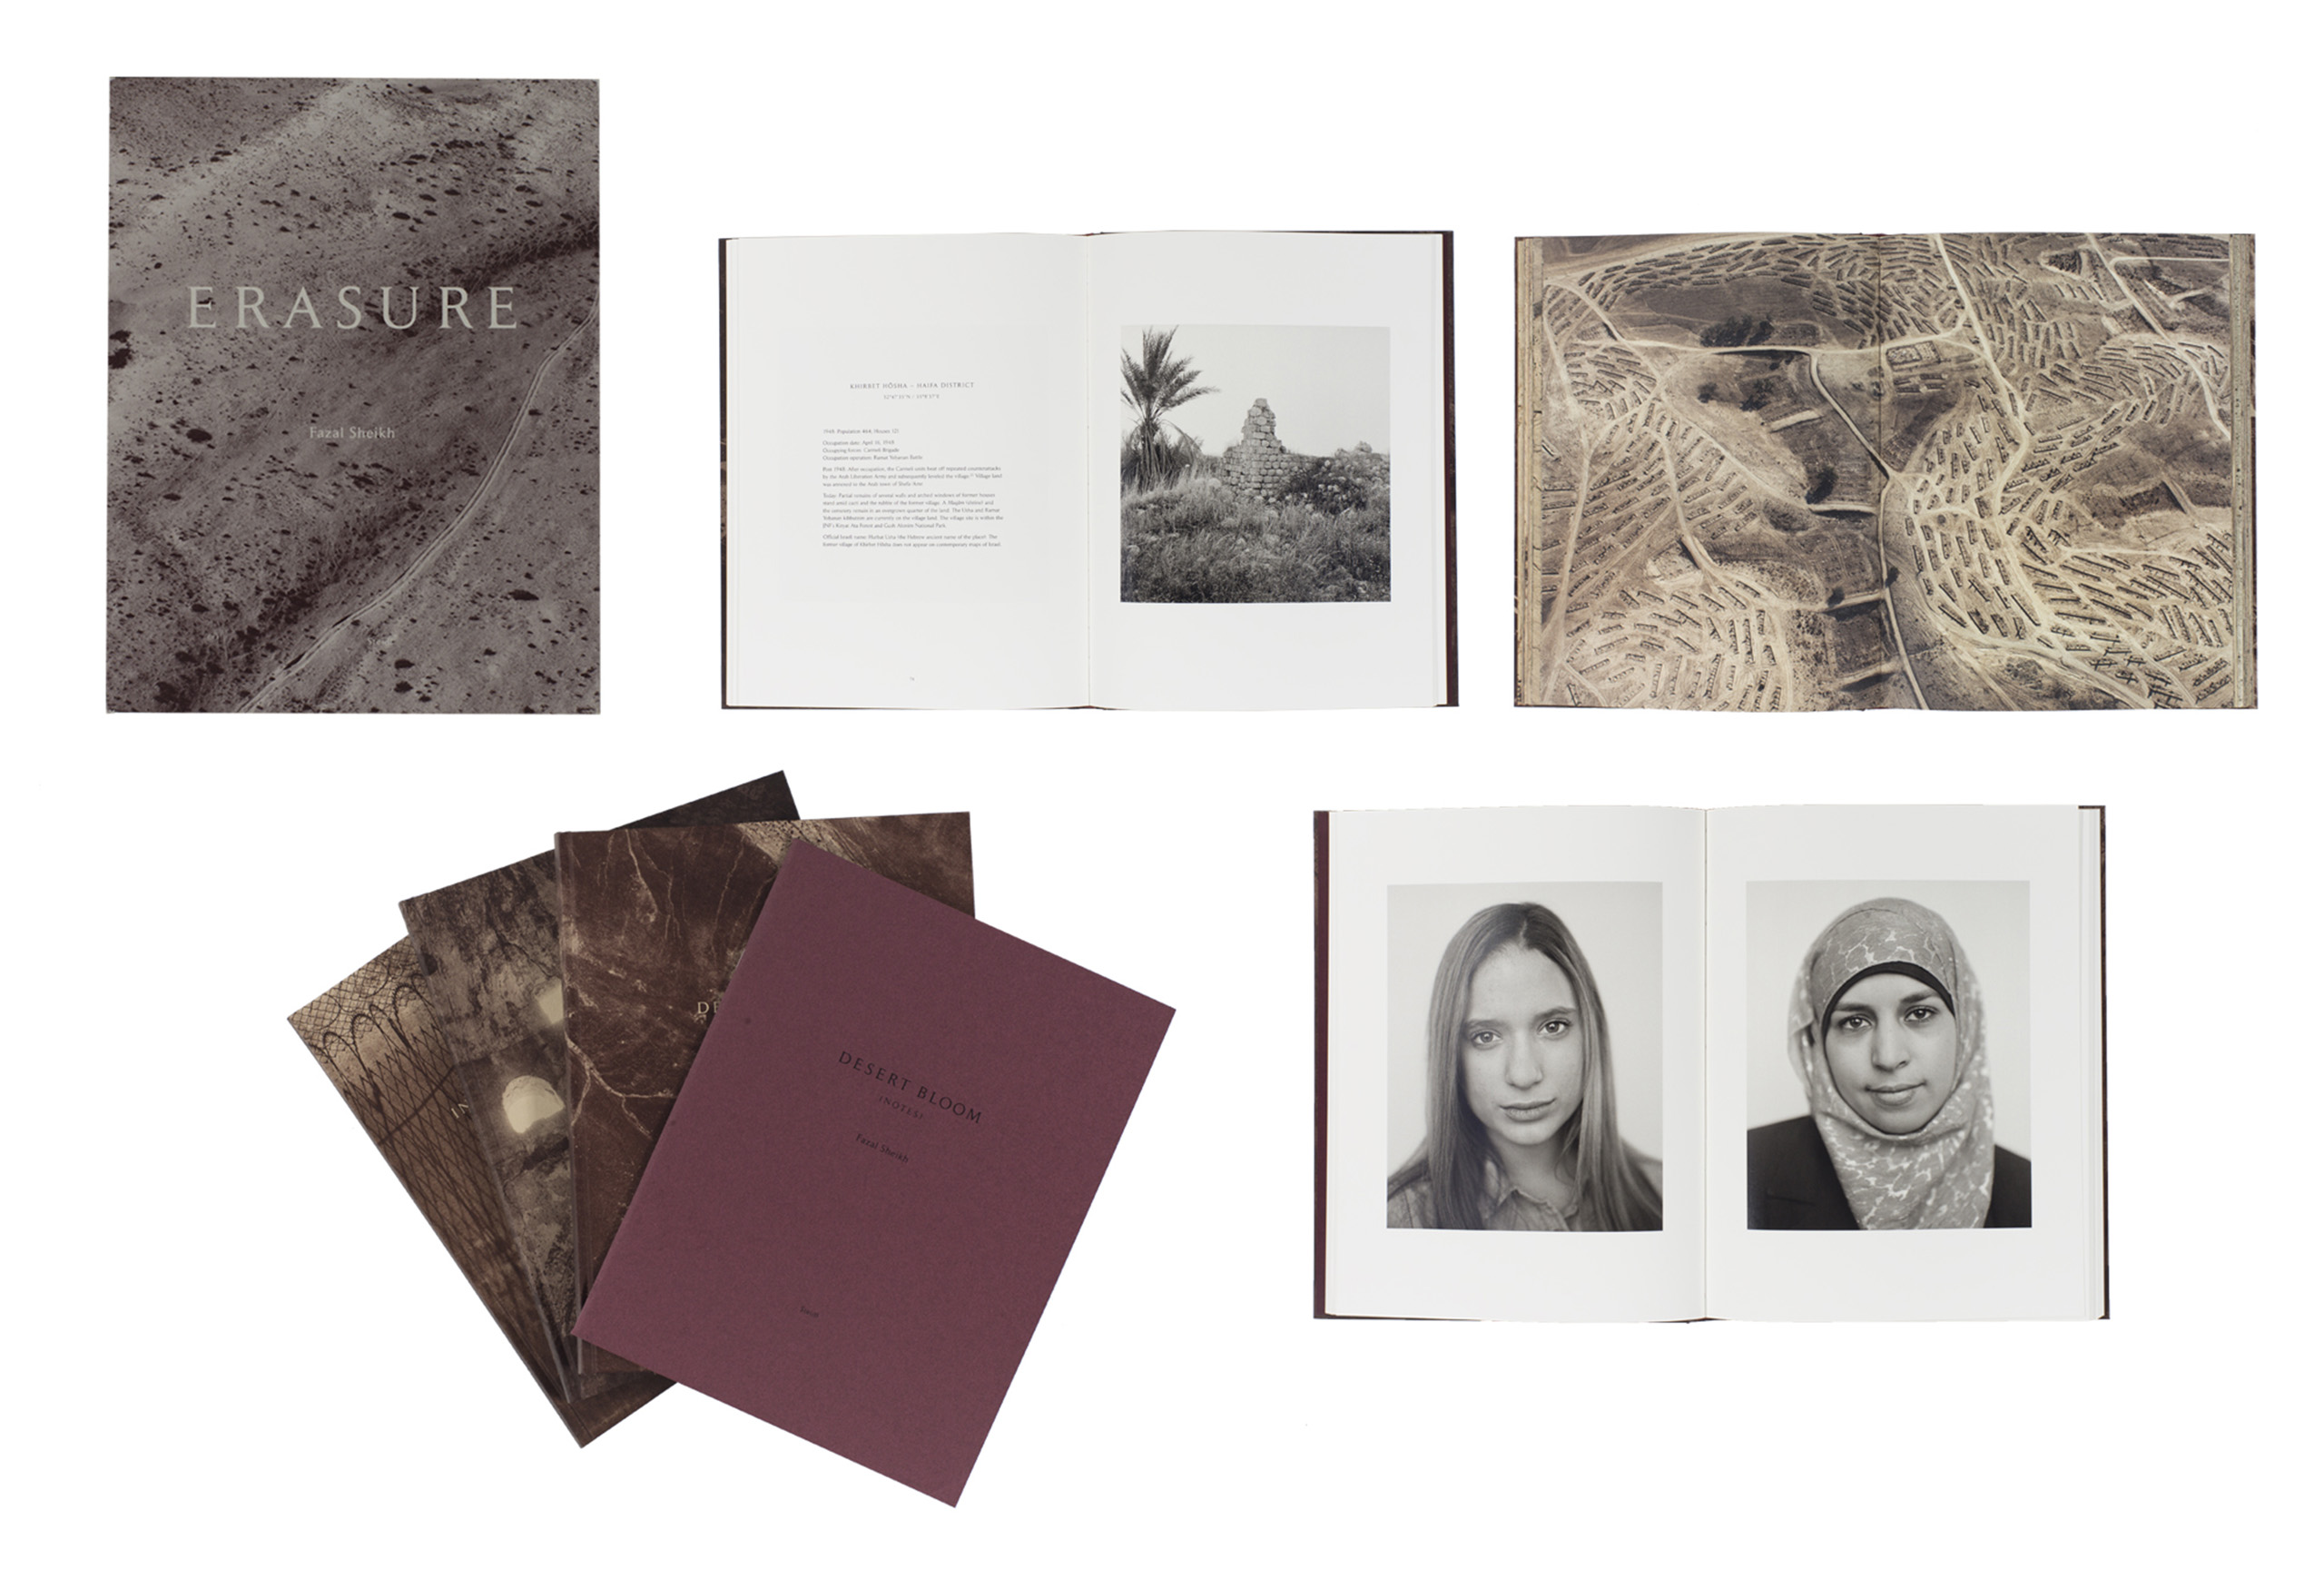 Erasure by Fazal Sheikh, published by Steidl. Short-listed for PhotoBook of the Year.